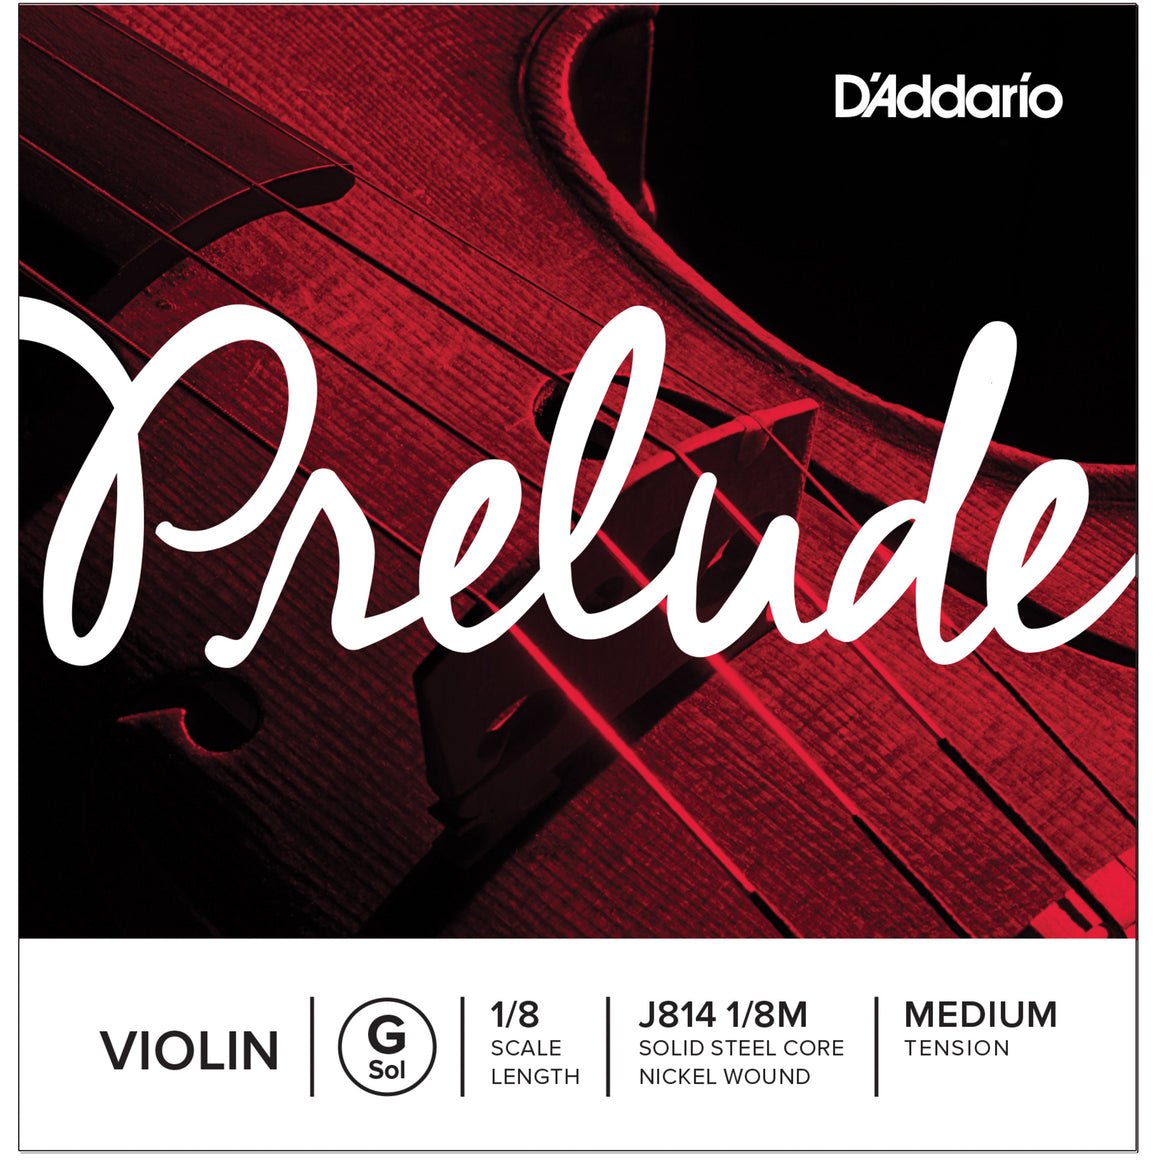 D'Addario Prelude 1/8 G Violin Single String Medium J814